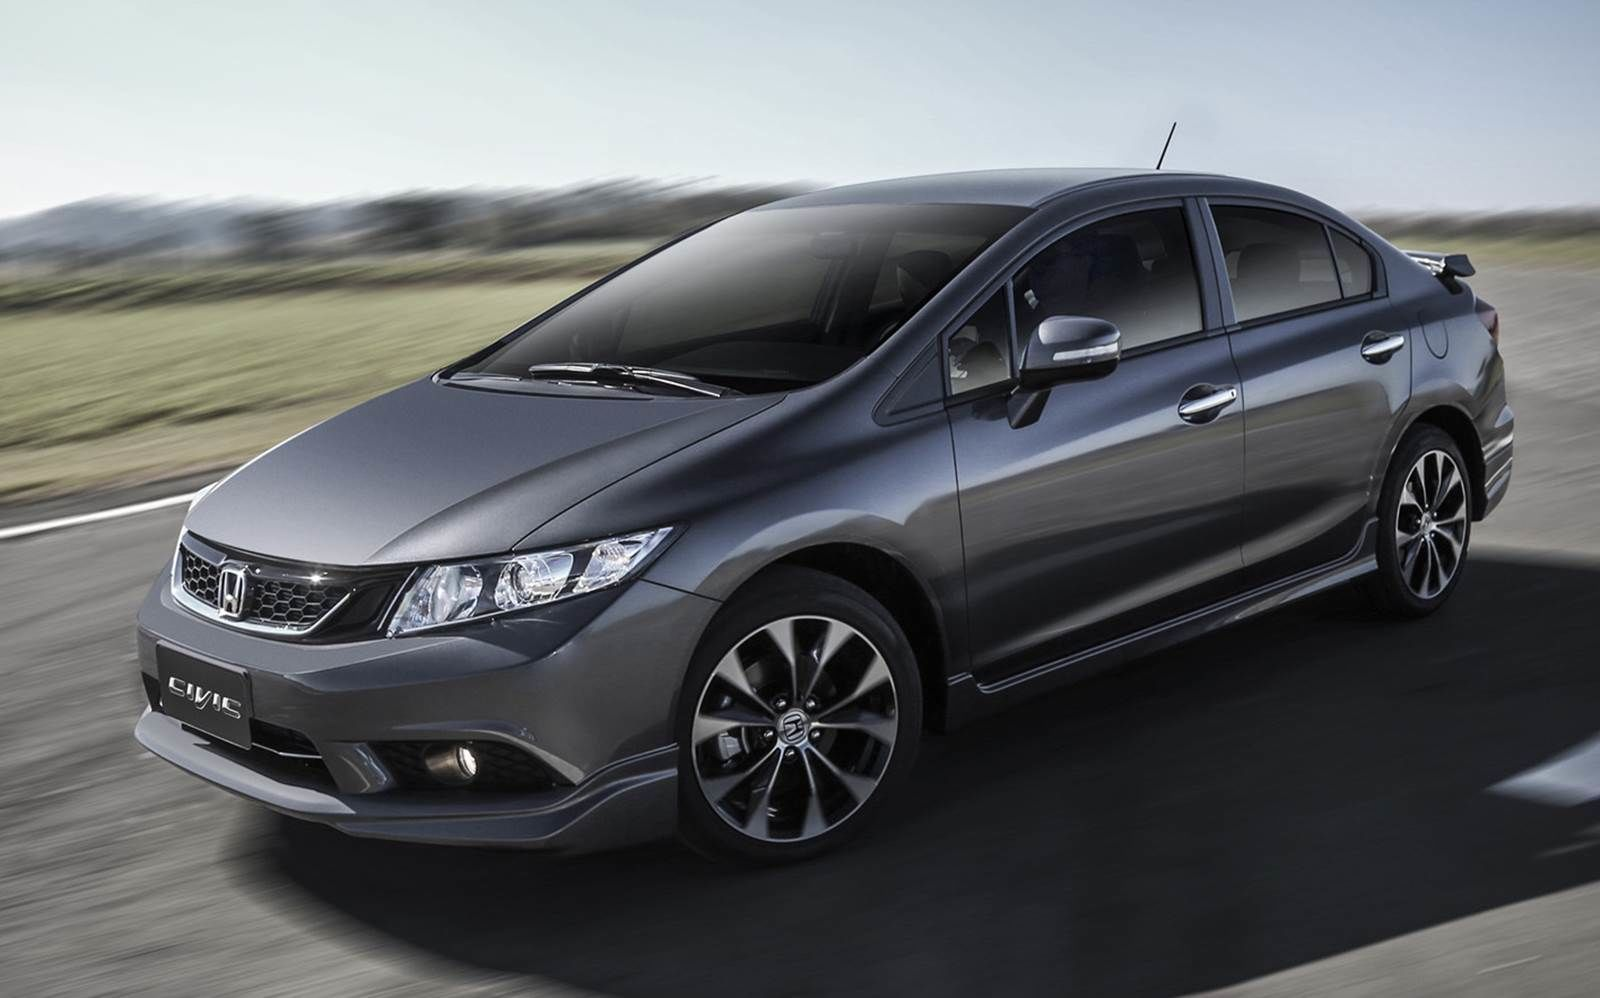 features honda news gallery mt review look first image civic coupe photo homepage